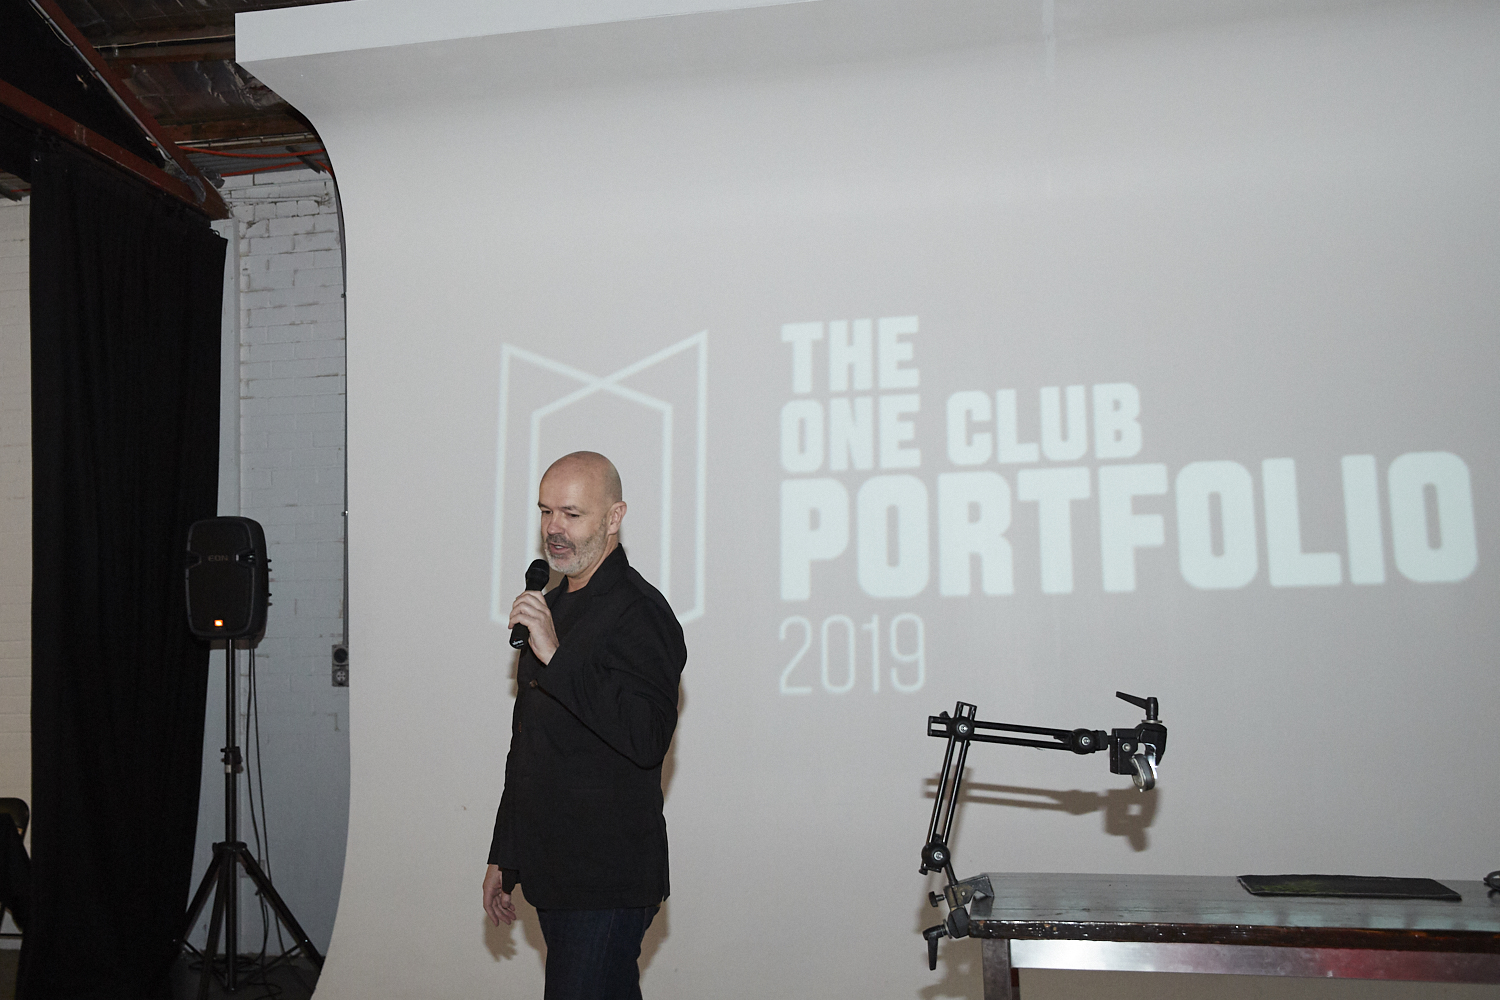 Cale Berry and Will Fox win all-star trip to New York City at the MADC + One Club Portfolio Night